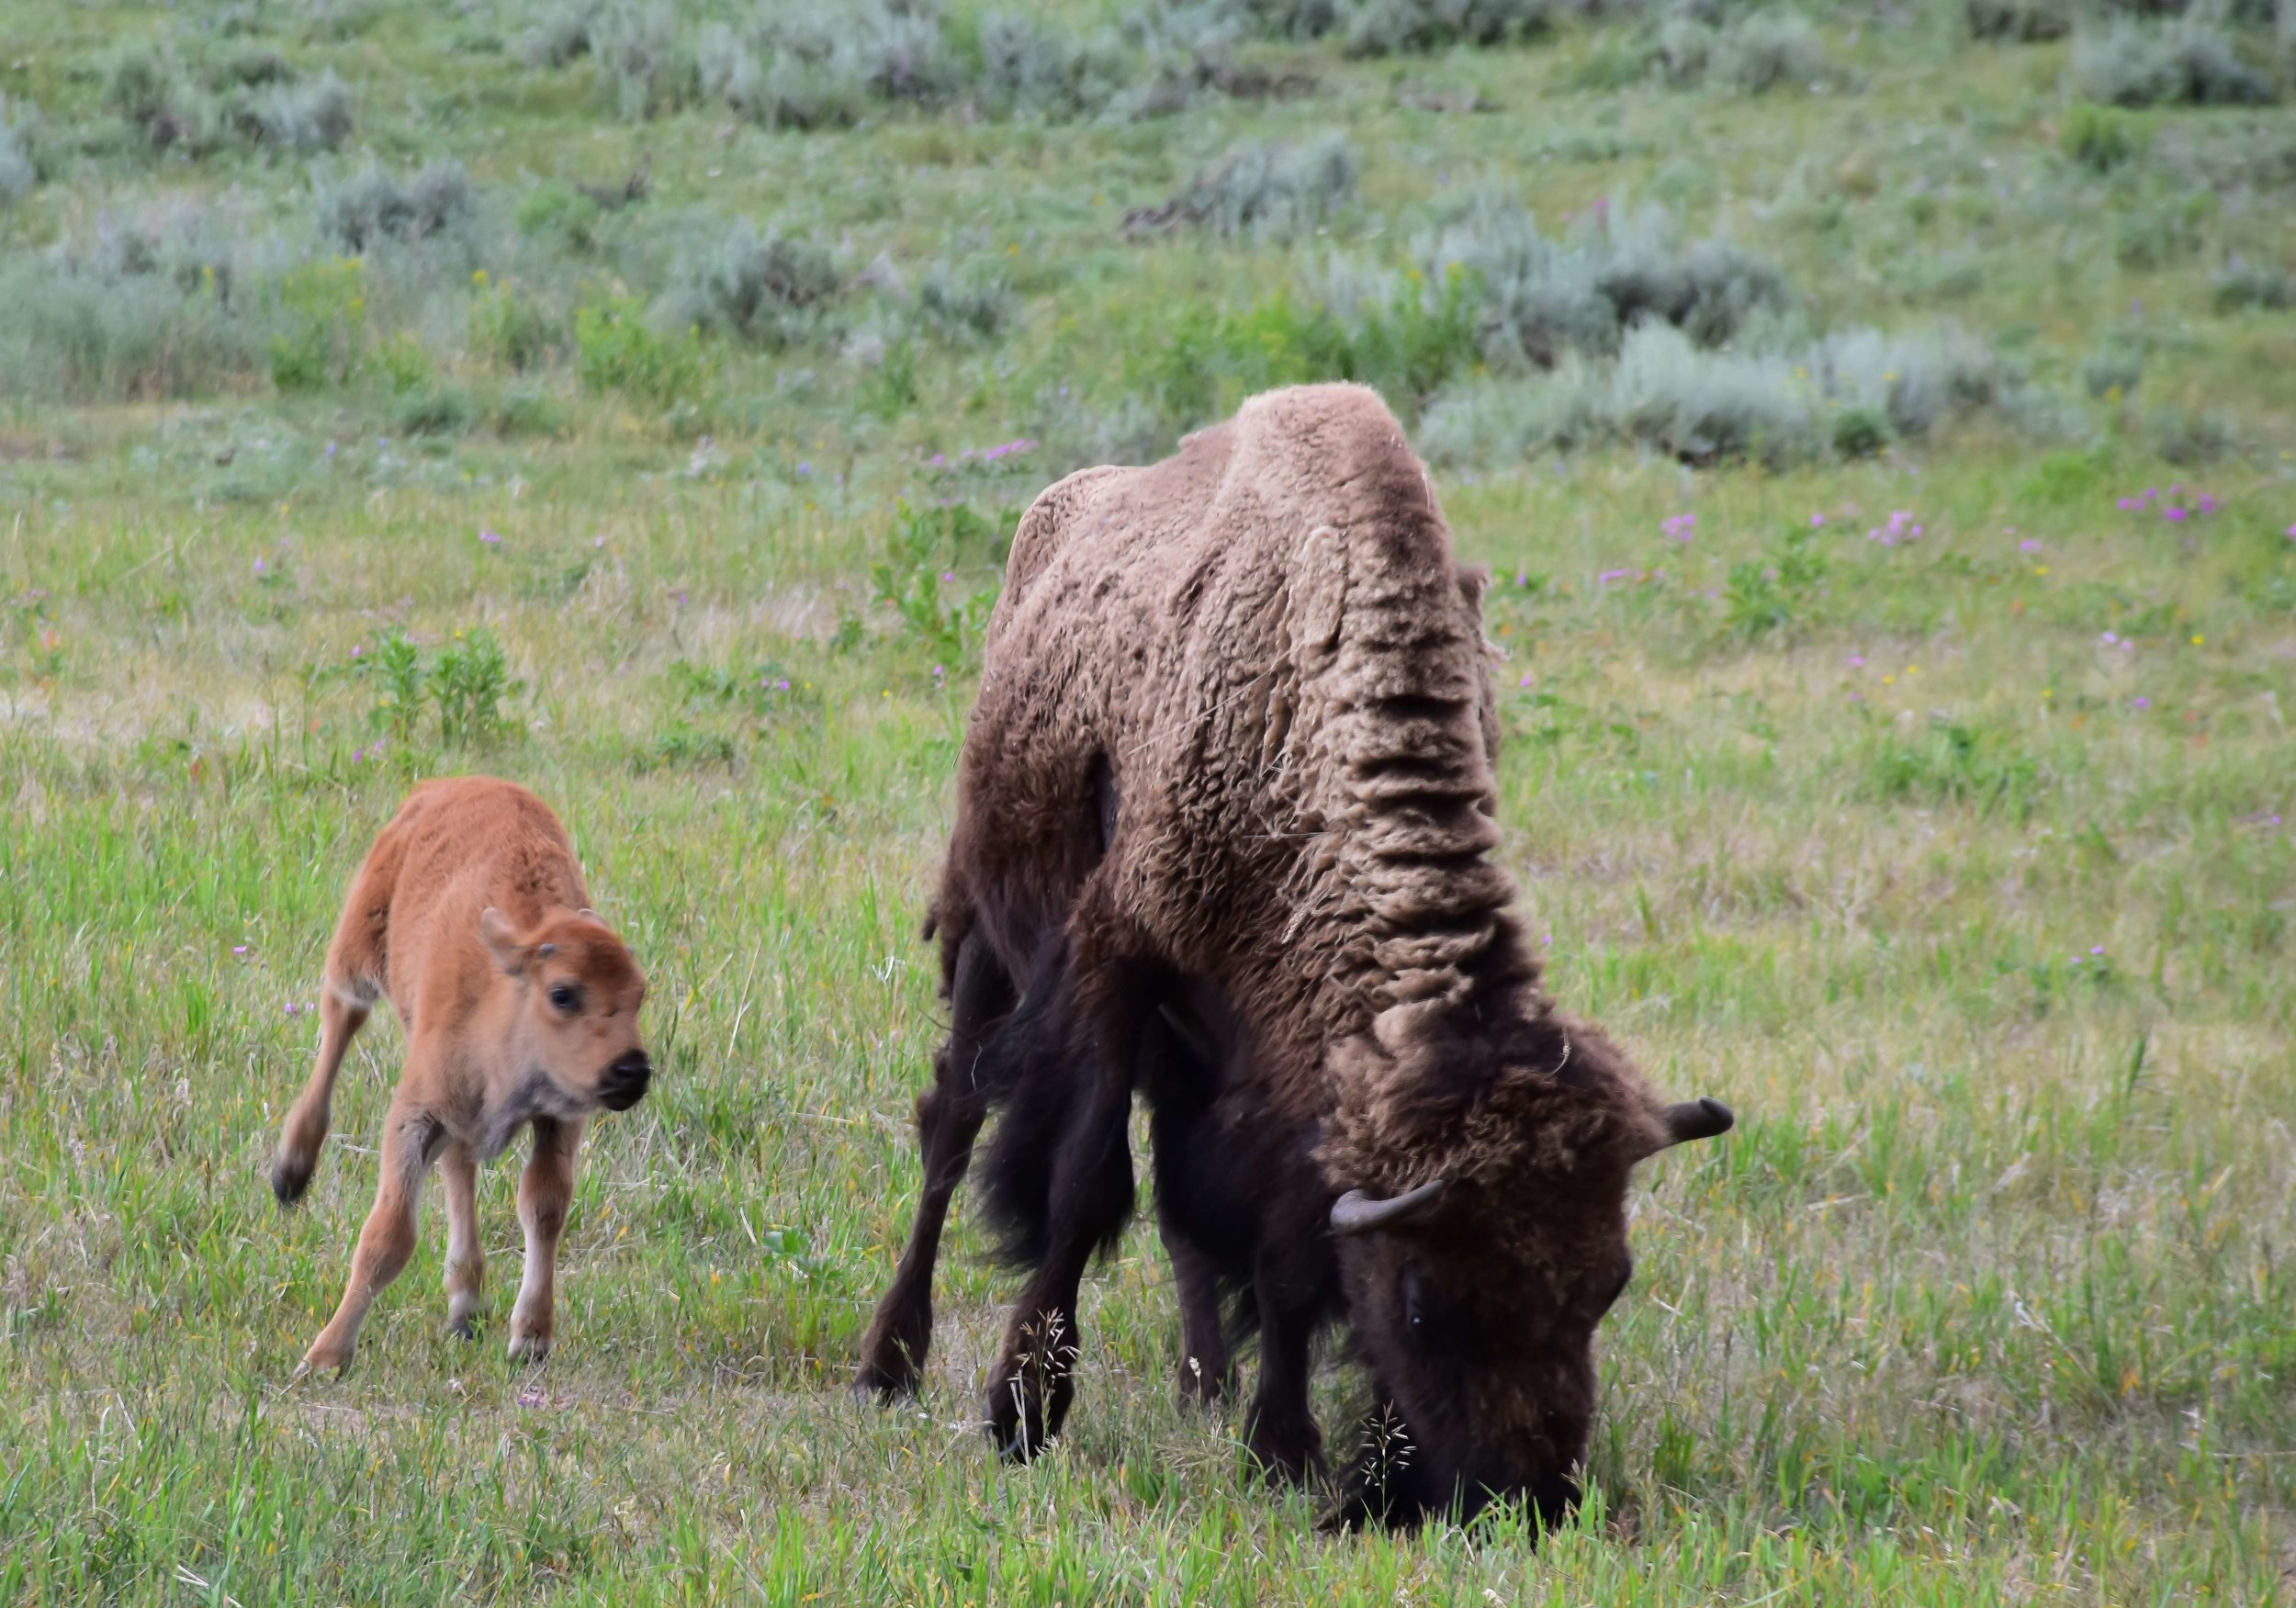 Bison and a calf, photo by Chris Umpierre.